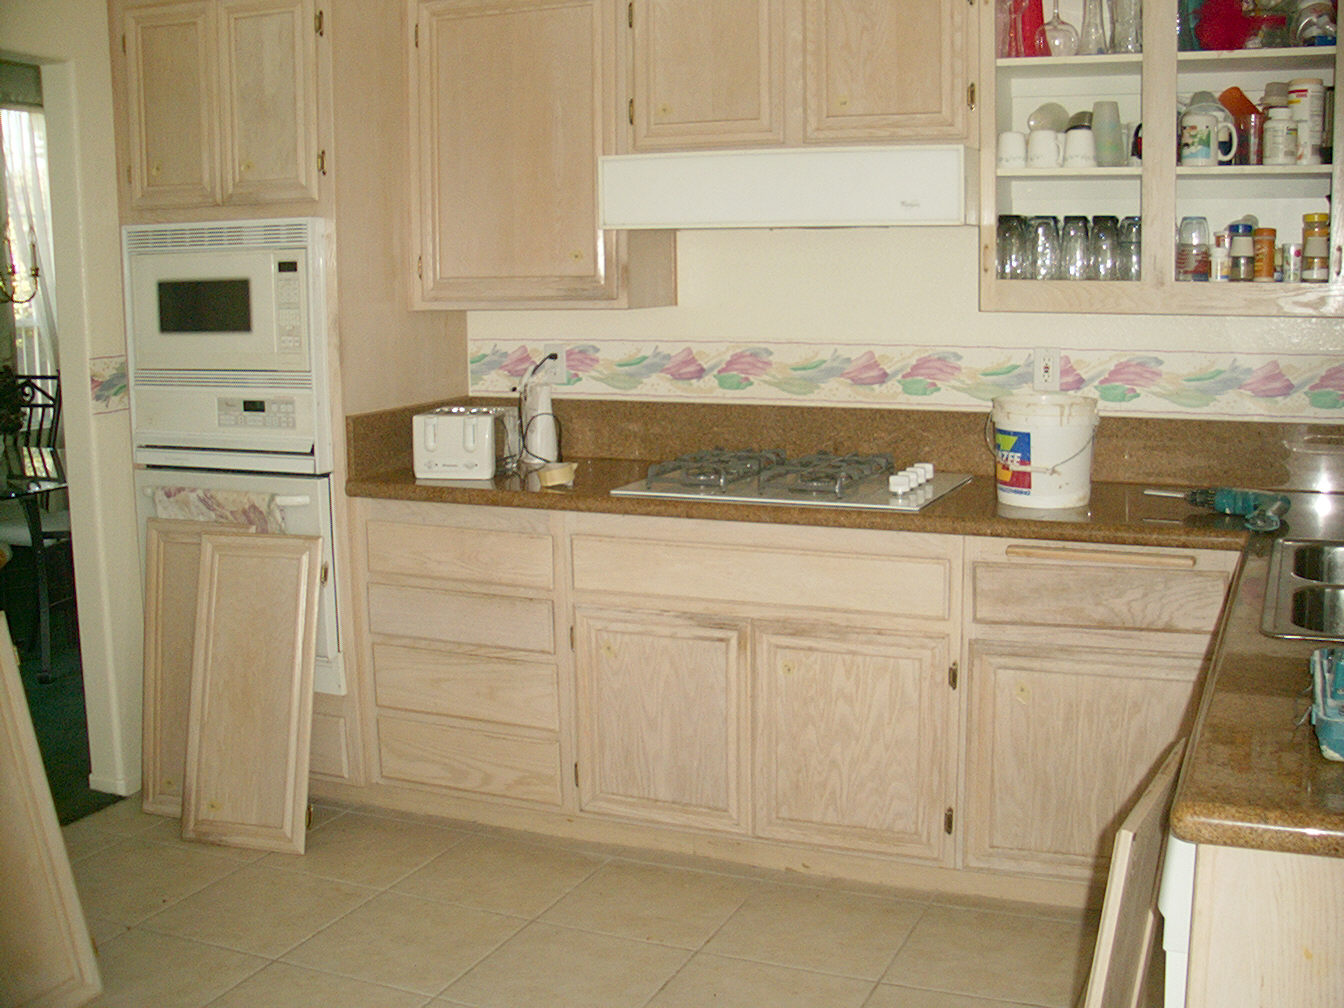 Staining Unfinished Kitchen Cabinets Cabinet Refinishing Cabinet Staining Painting Cabinets